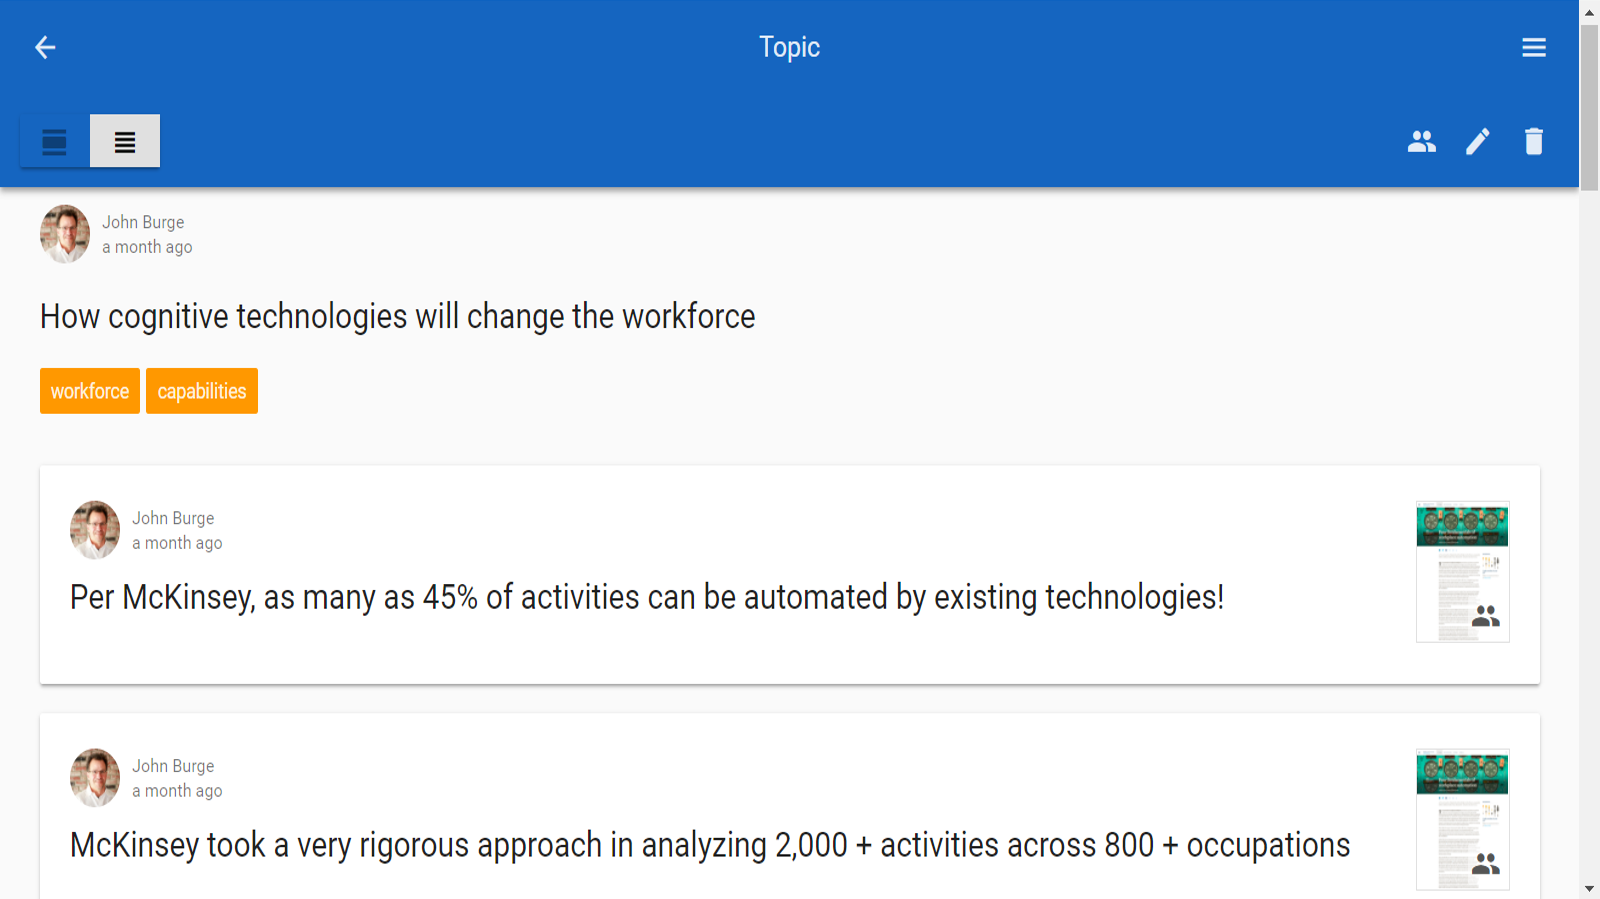 Topics - a powerful way to collect and share insights (yours and your peers)